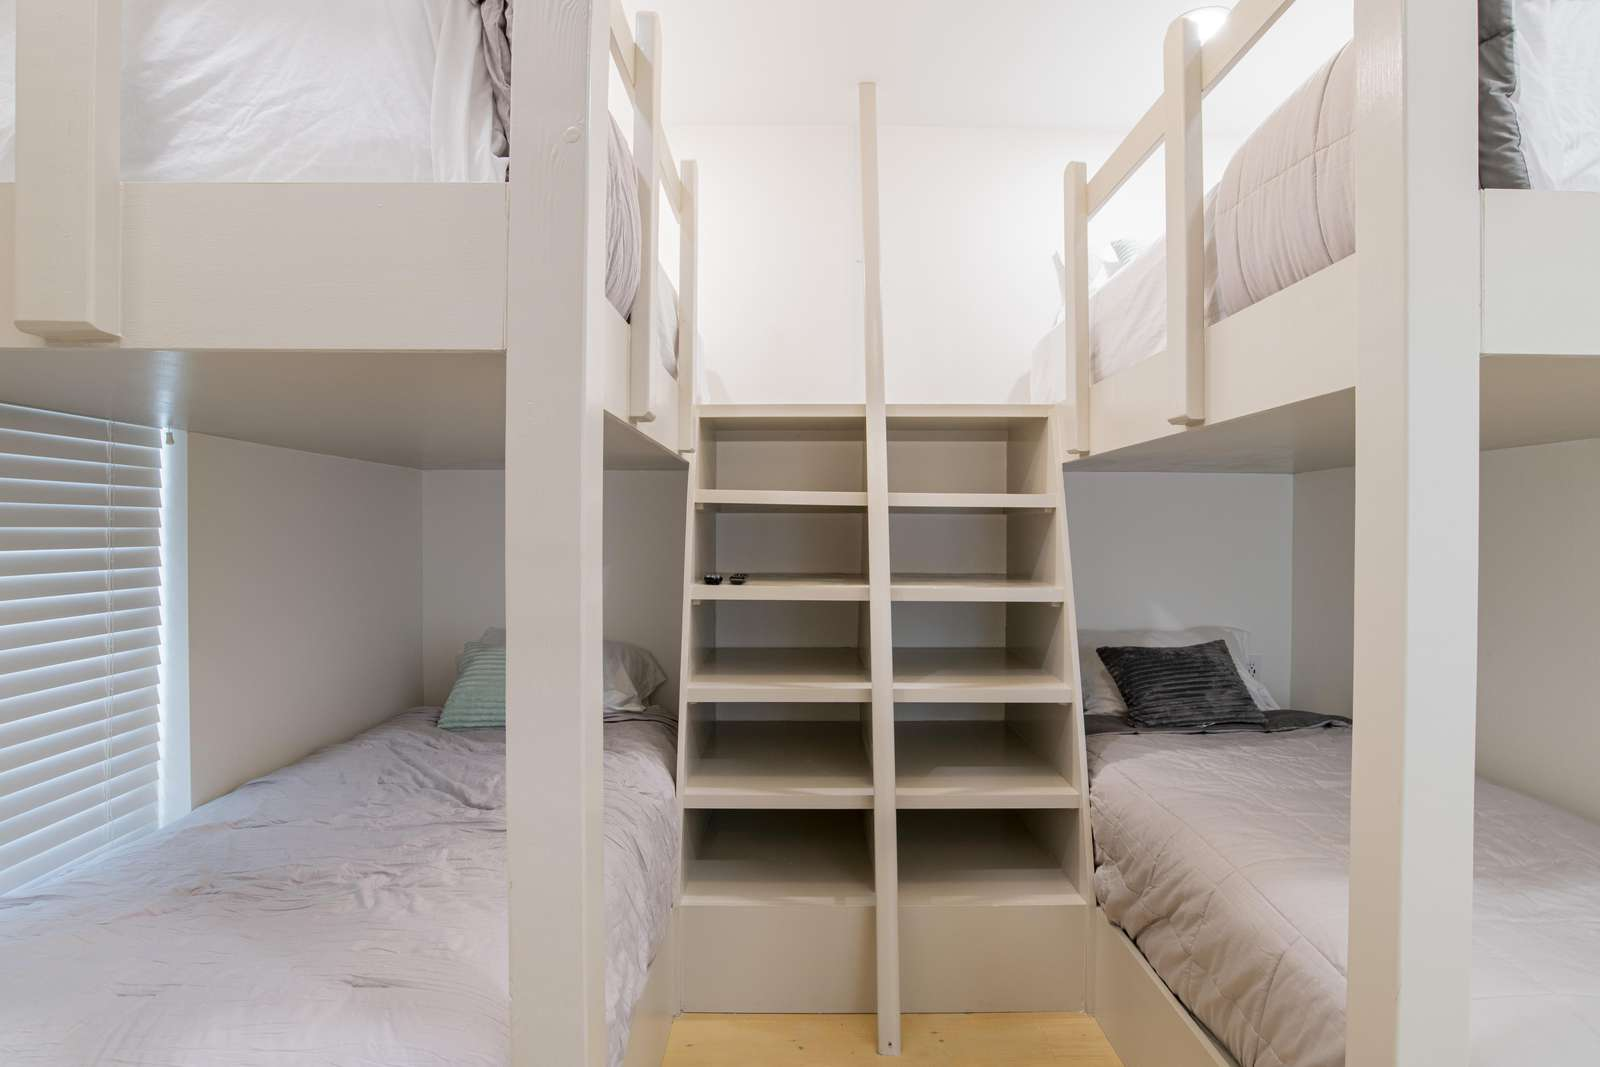 2nd bunk rooms with 4 twins XLs. Sleeps 4.